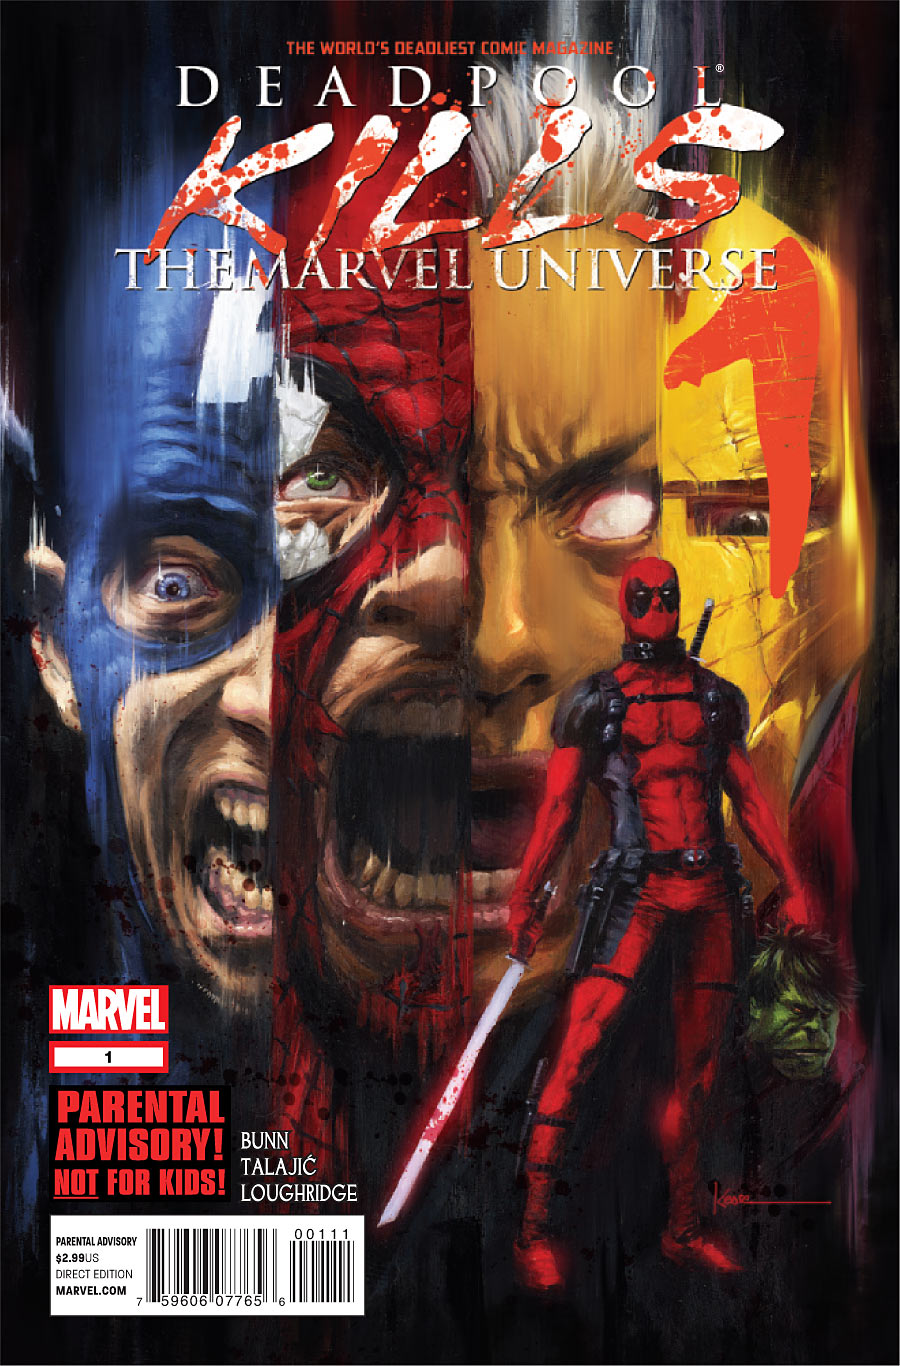 http://images4.wikia.nocookie.net/__cb20120731185749/marveldatabase/images/1/19/Deadpool_Kills_the_Marvel_Universe_Vol_1_1.jpg